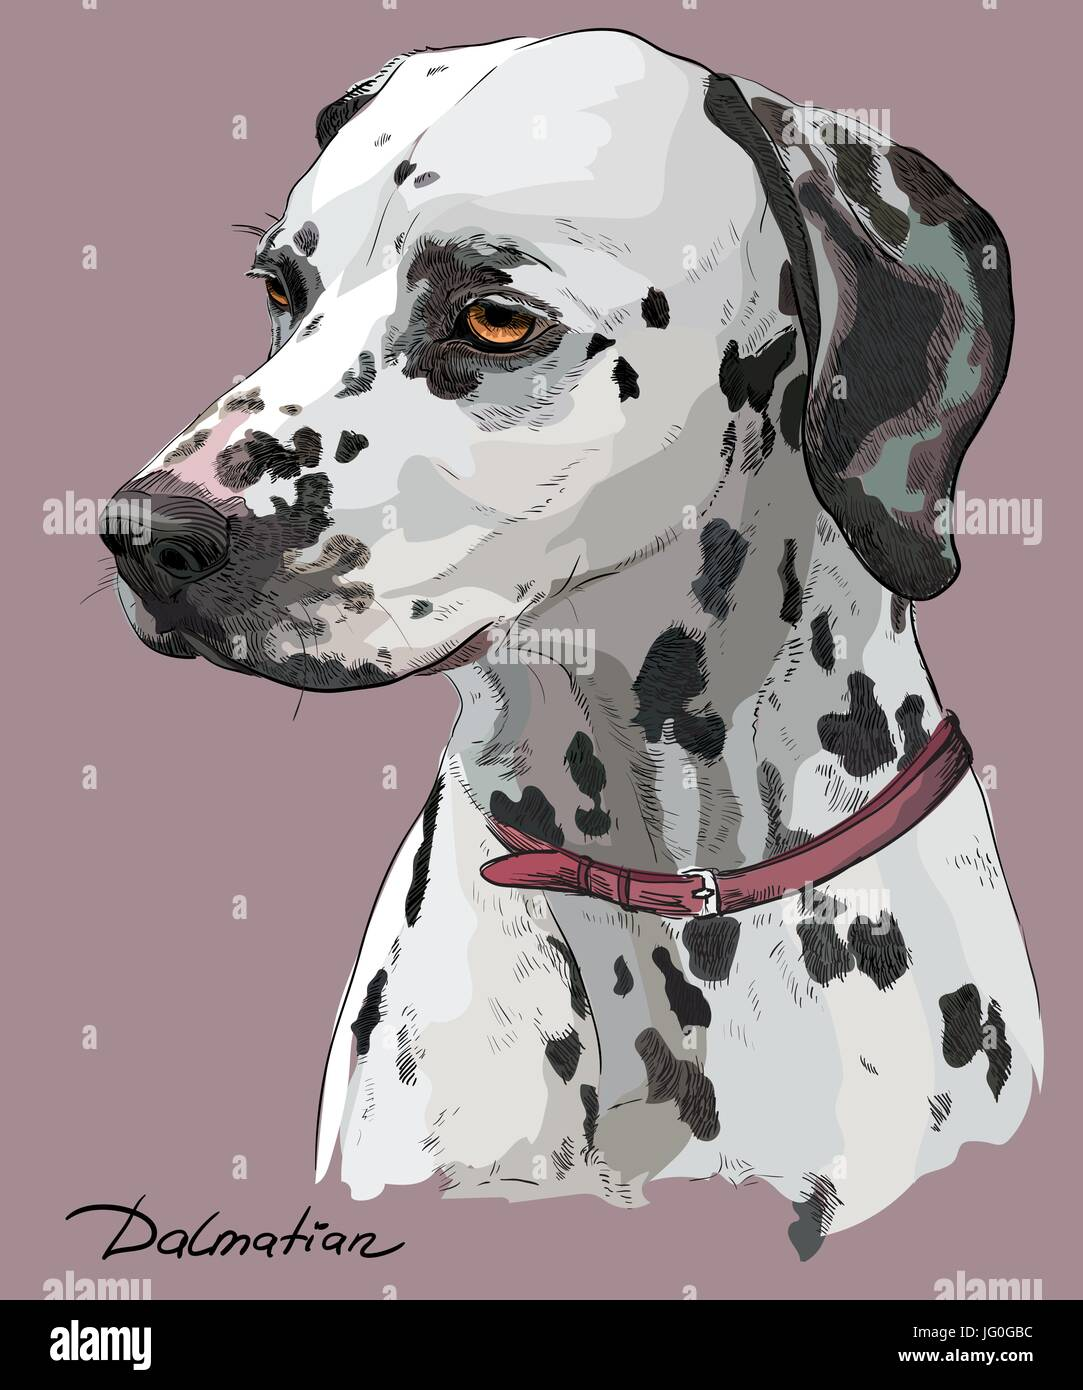 Coloful hand drawing vector portrait of dalmatian dog in profile on pink background - Stock Vector